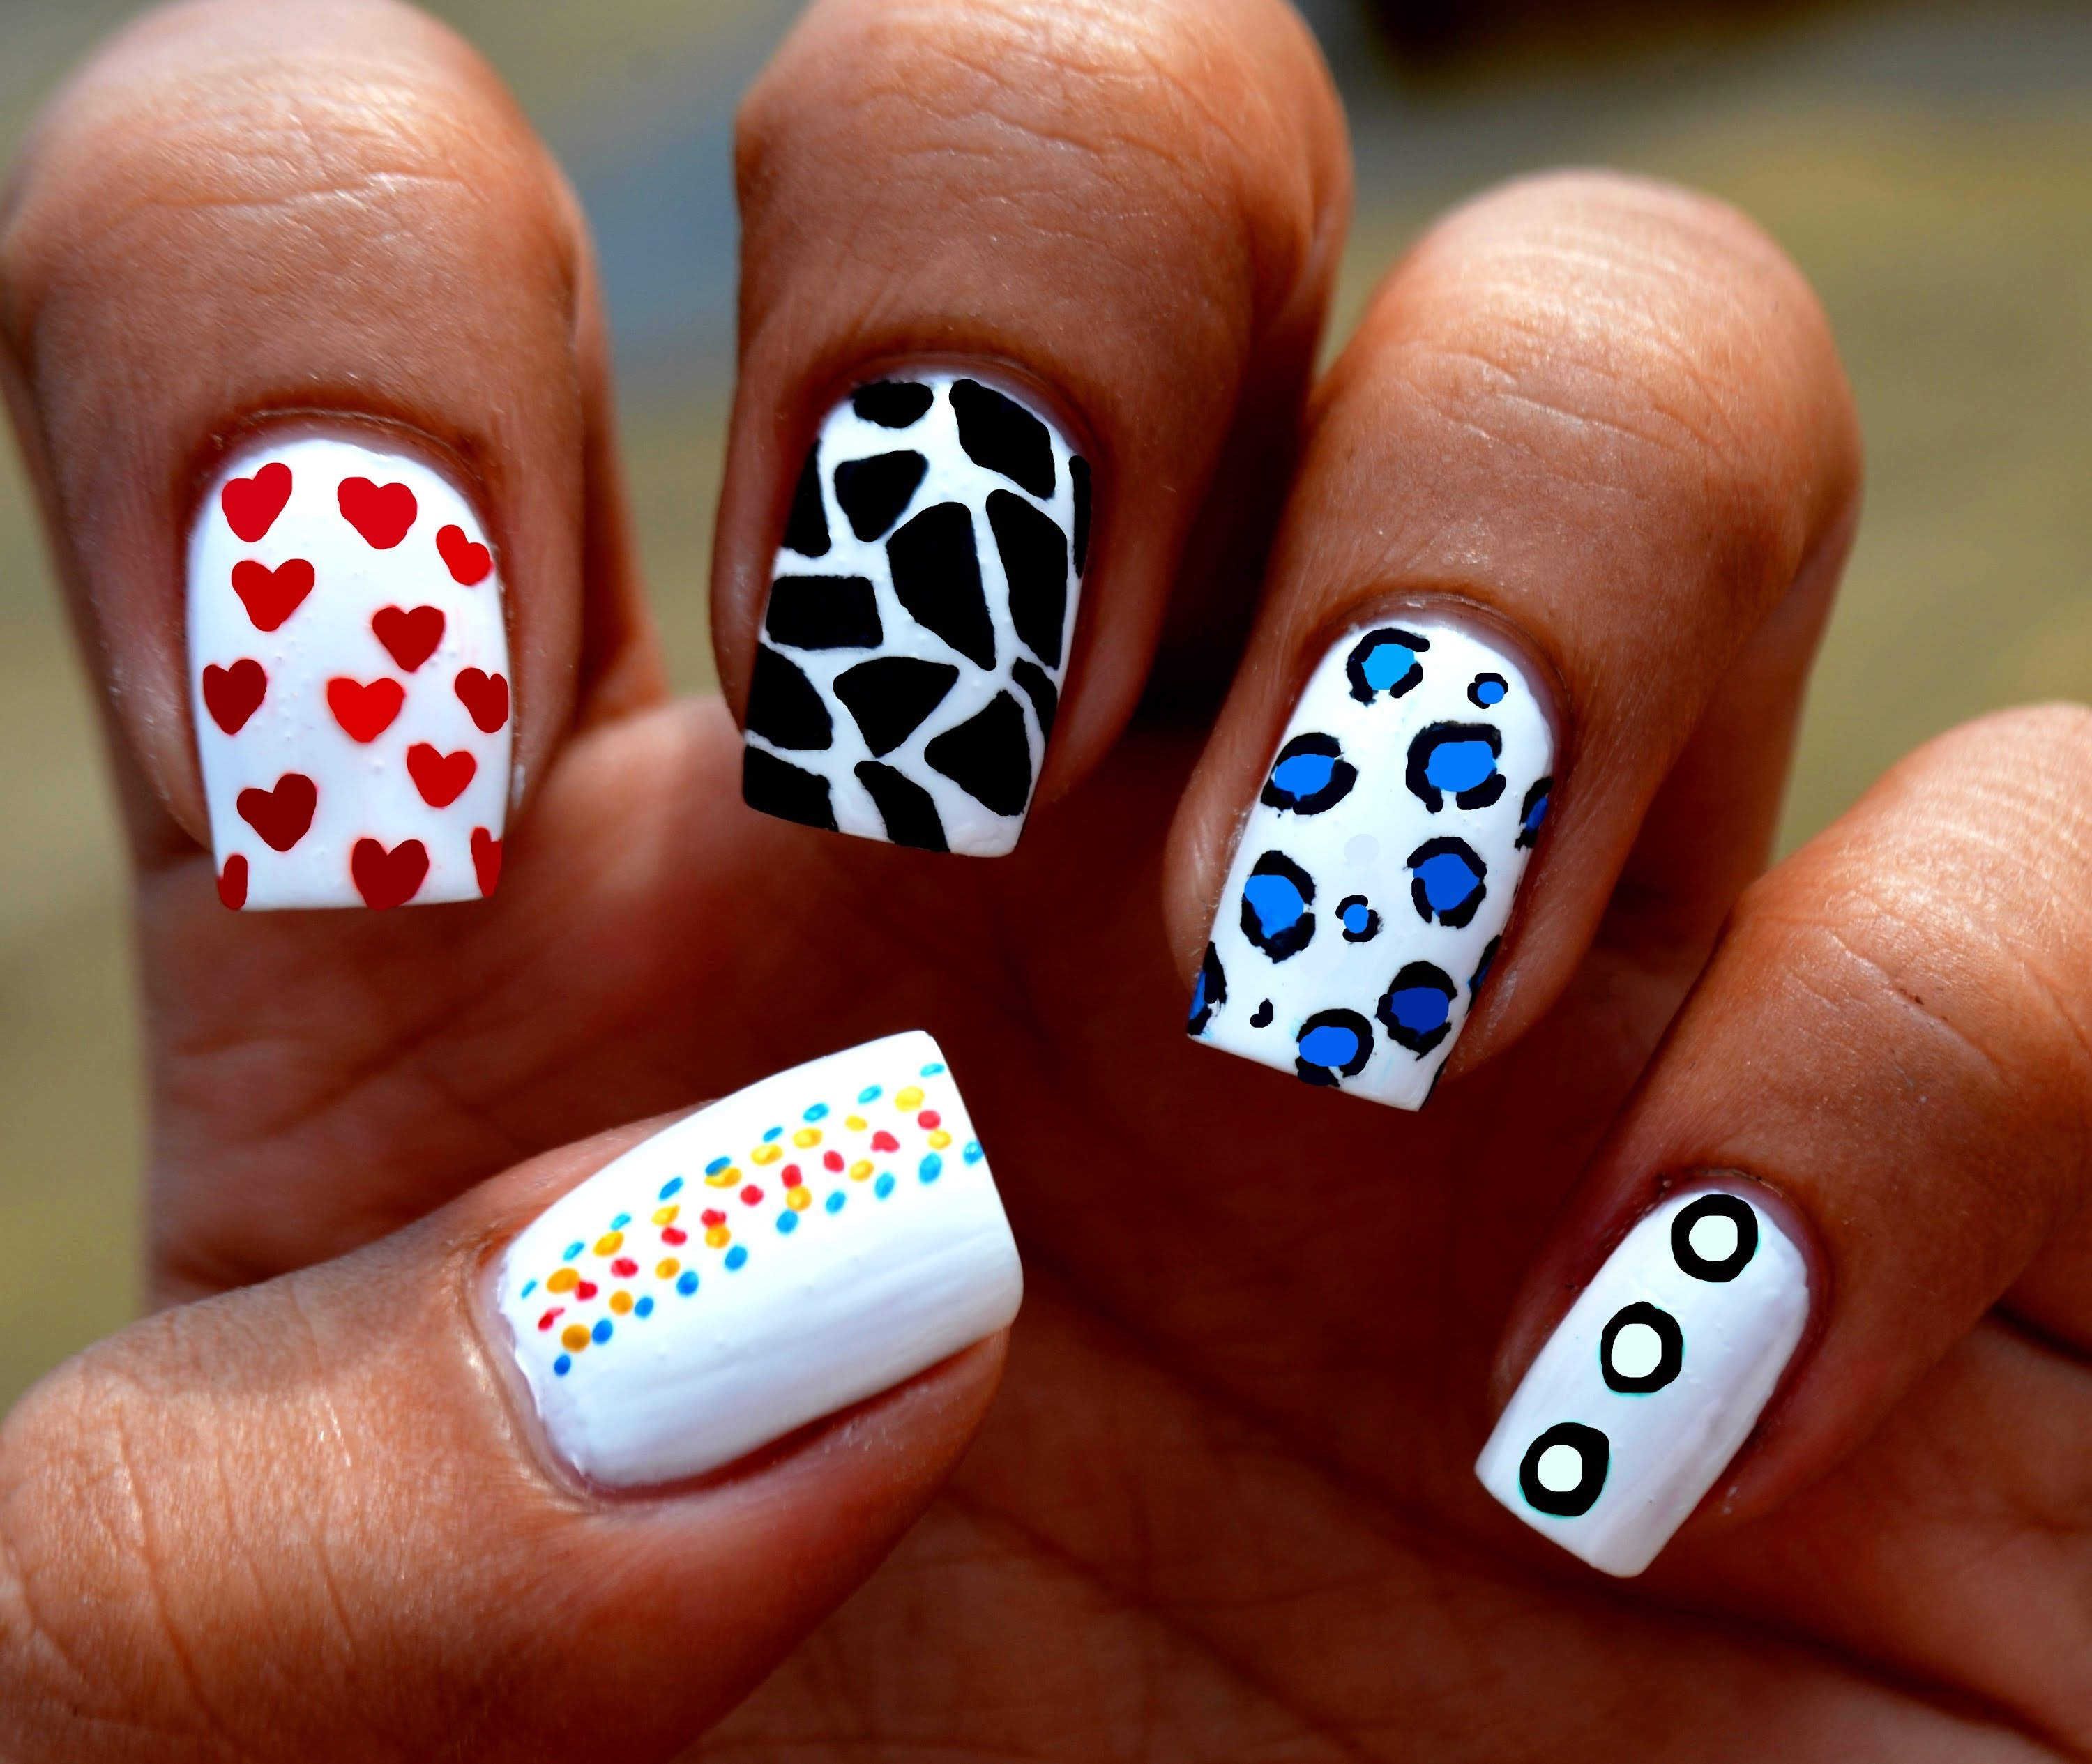 10 Toothpick Nail Art Designs Images